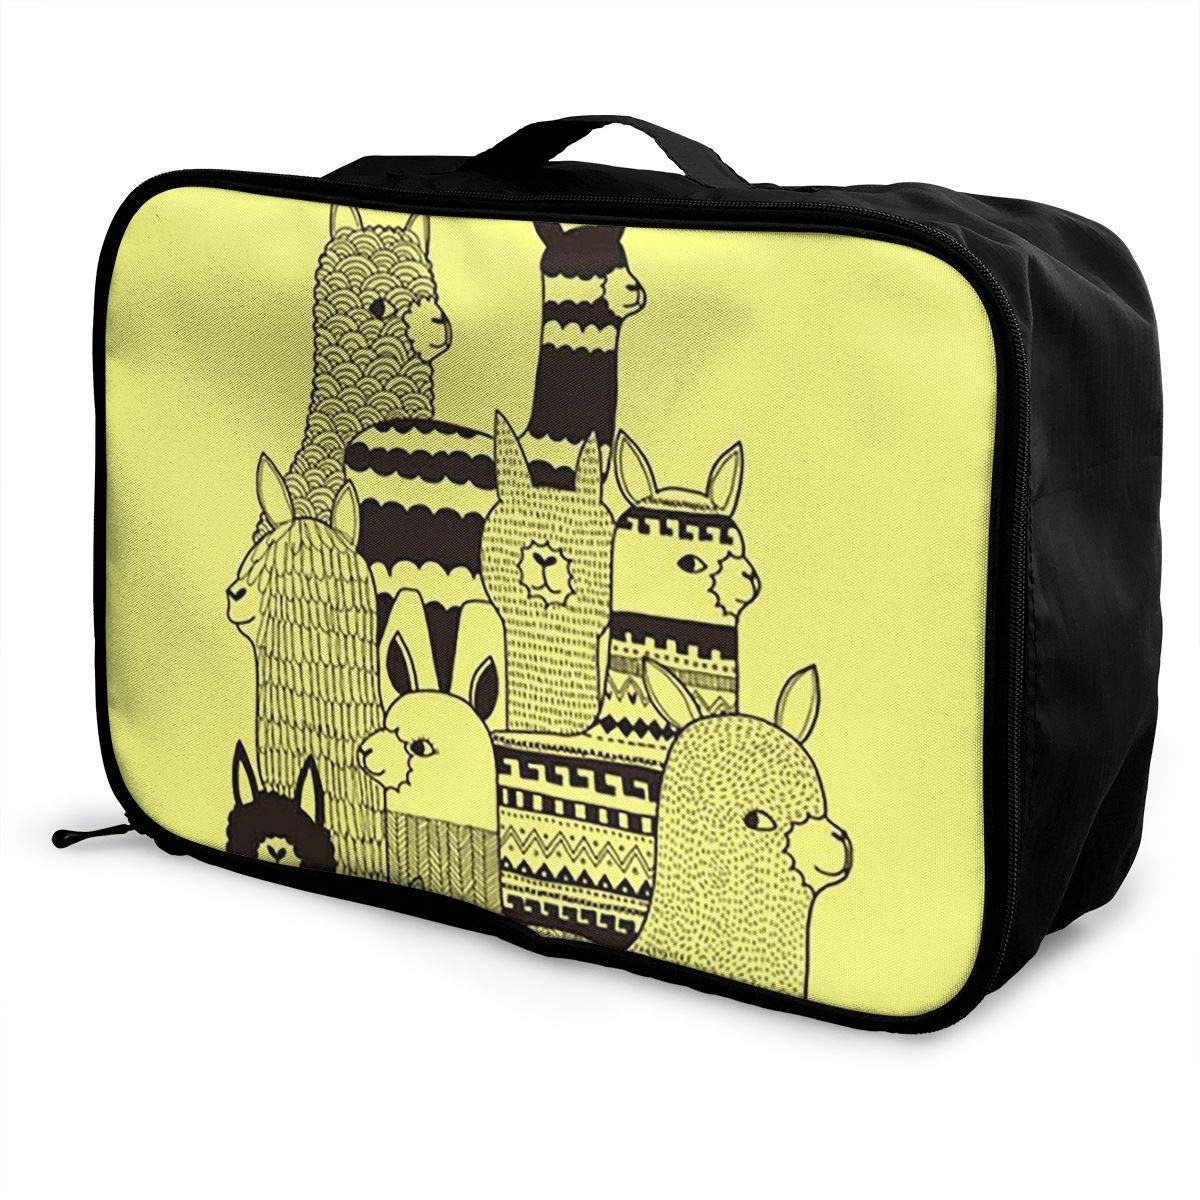 Portable Luggage Duffel Bag Llama Family Travel Bags Carry-on In Trolley Handle